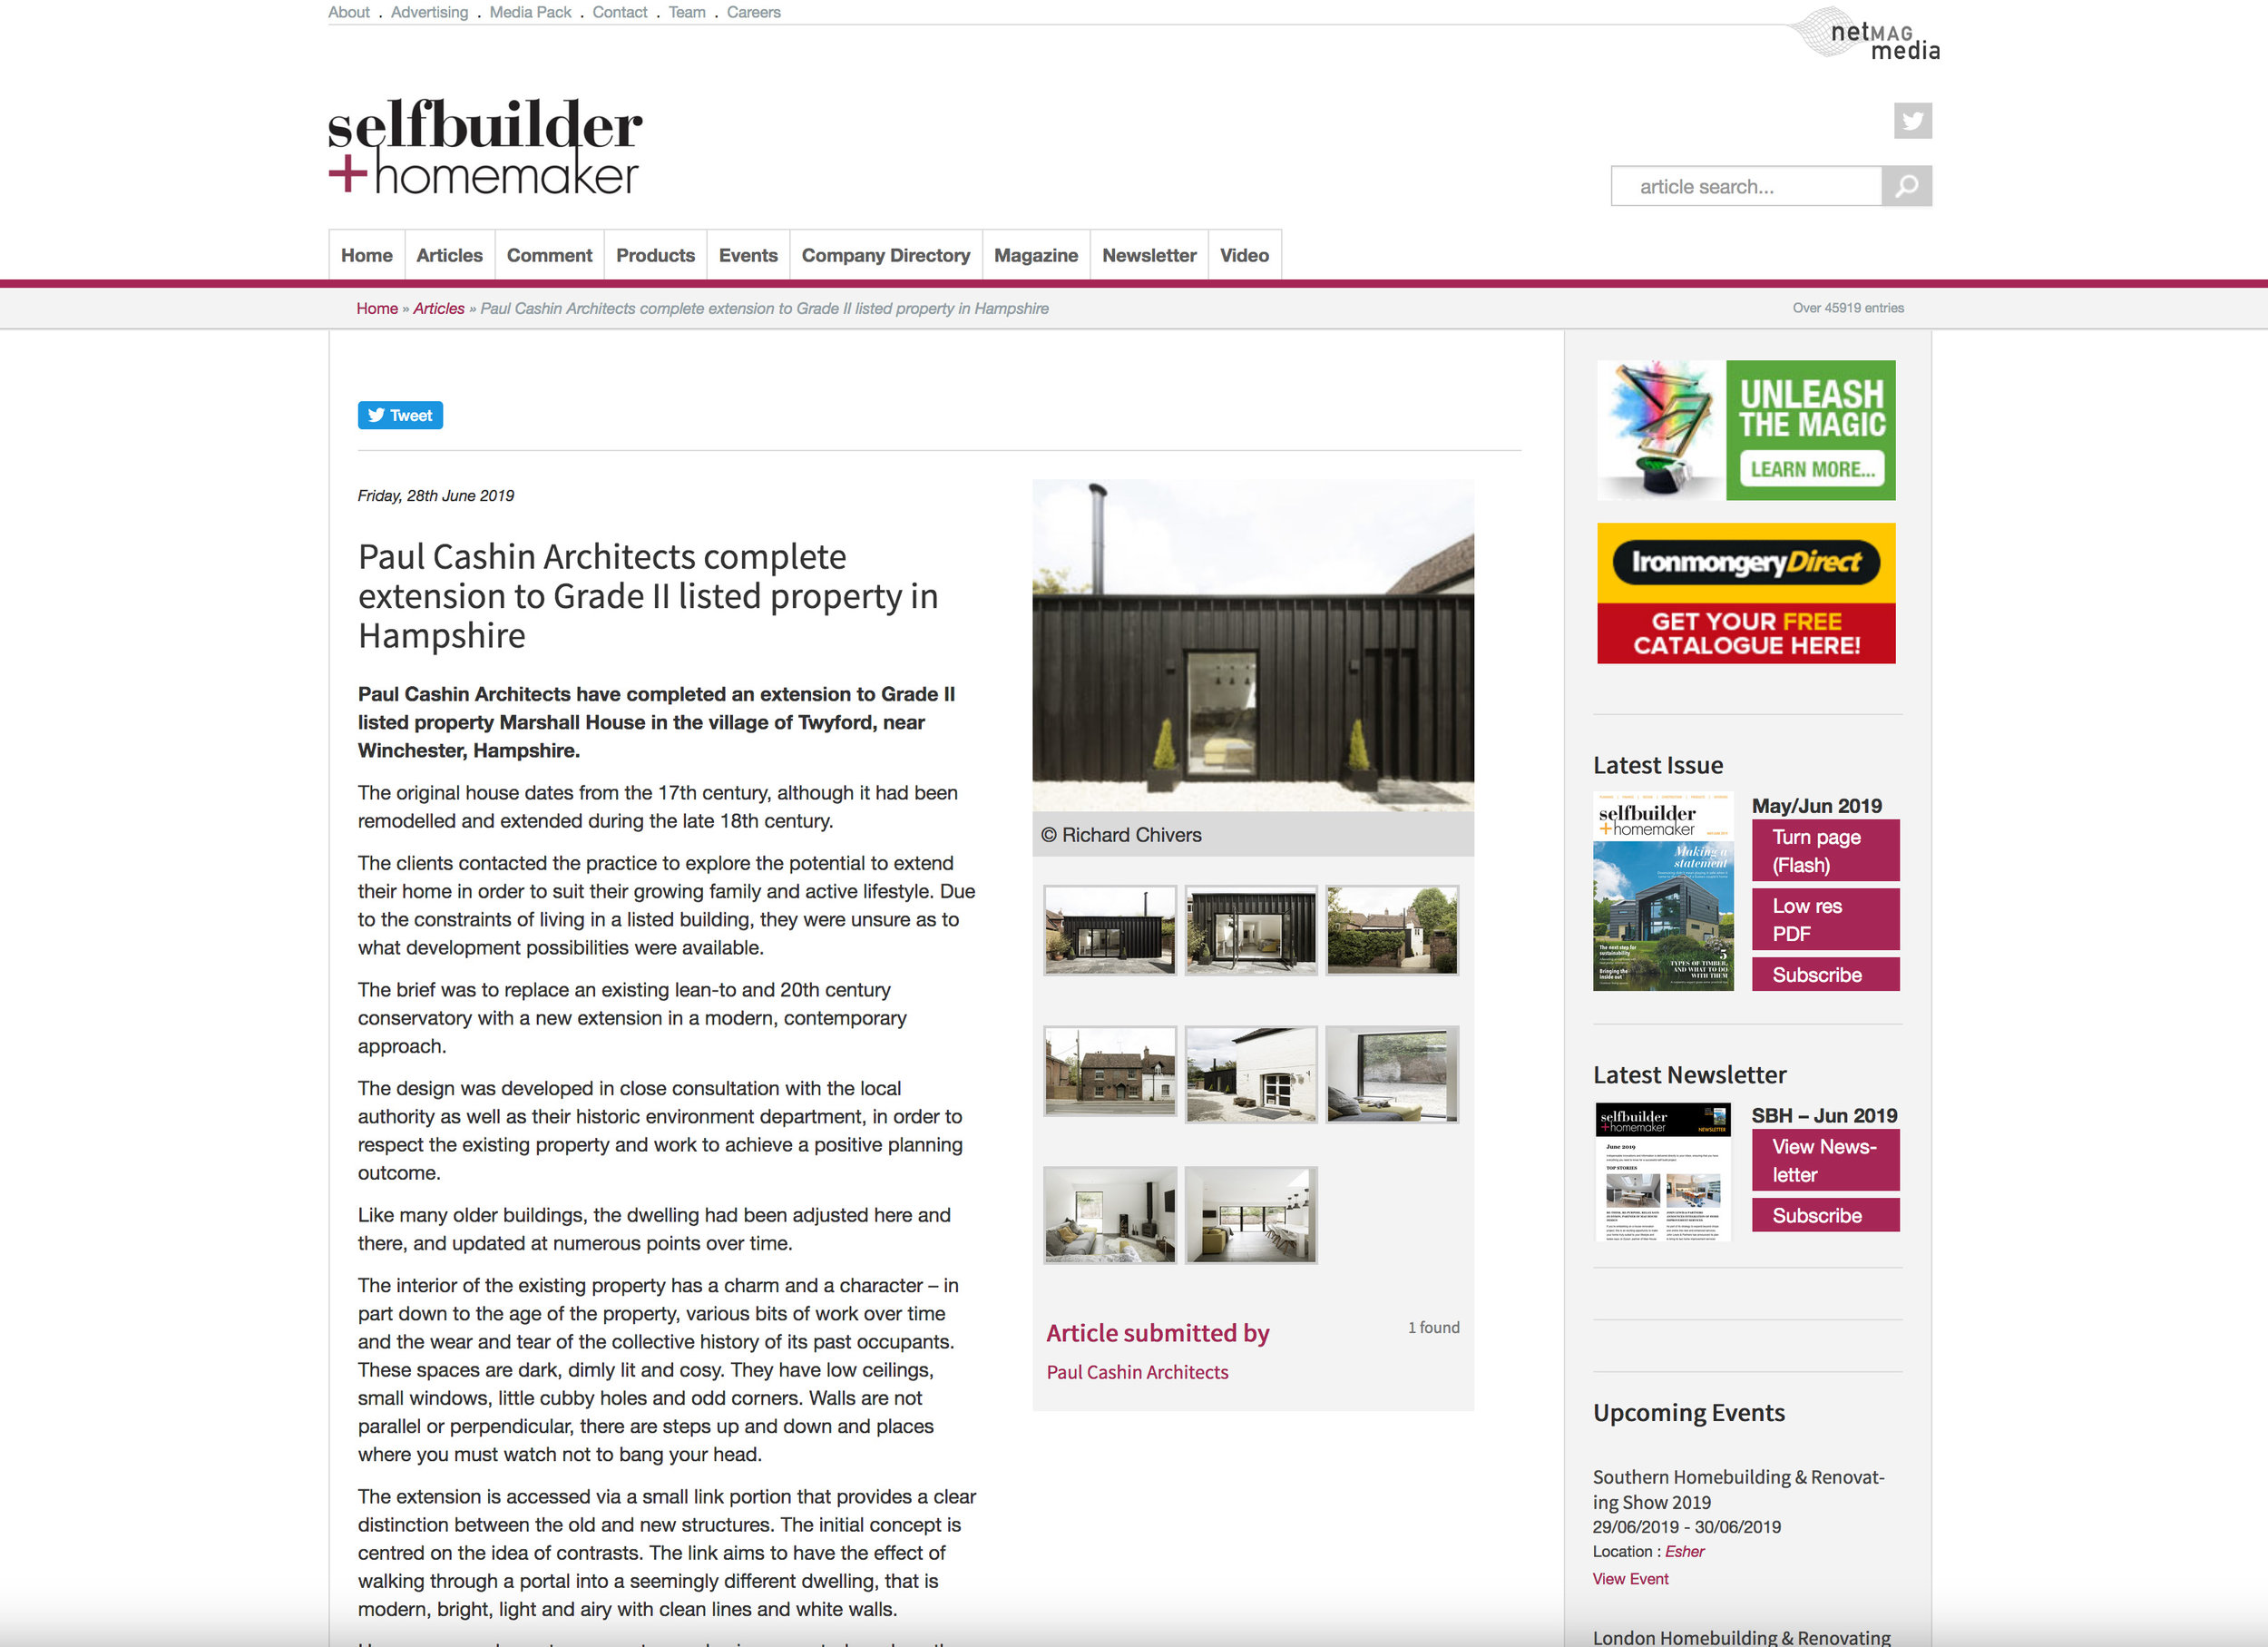 06.19 Marshall House featured in Selfbuilder + Homemaker